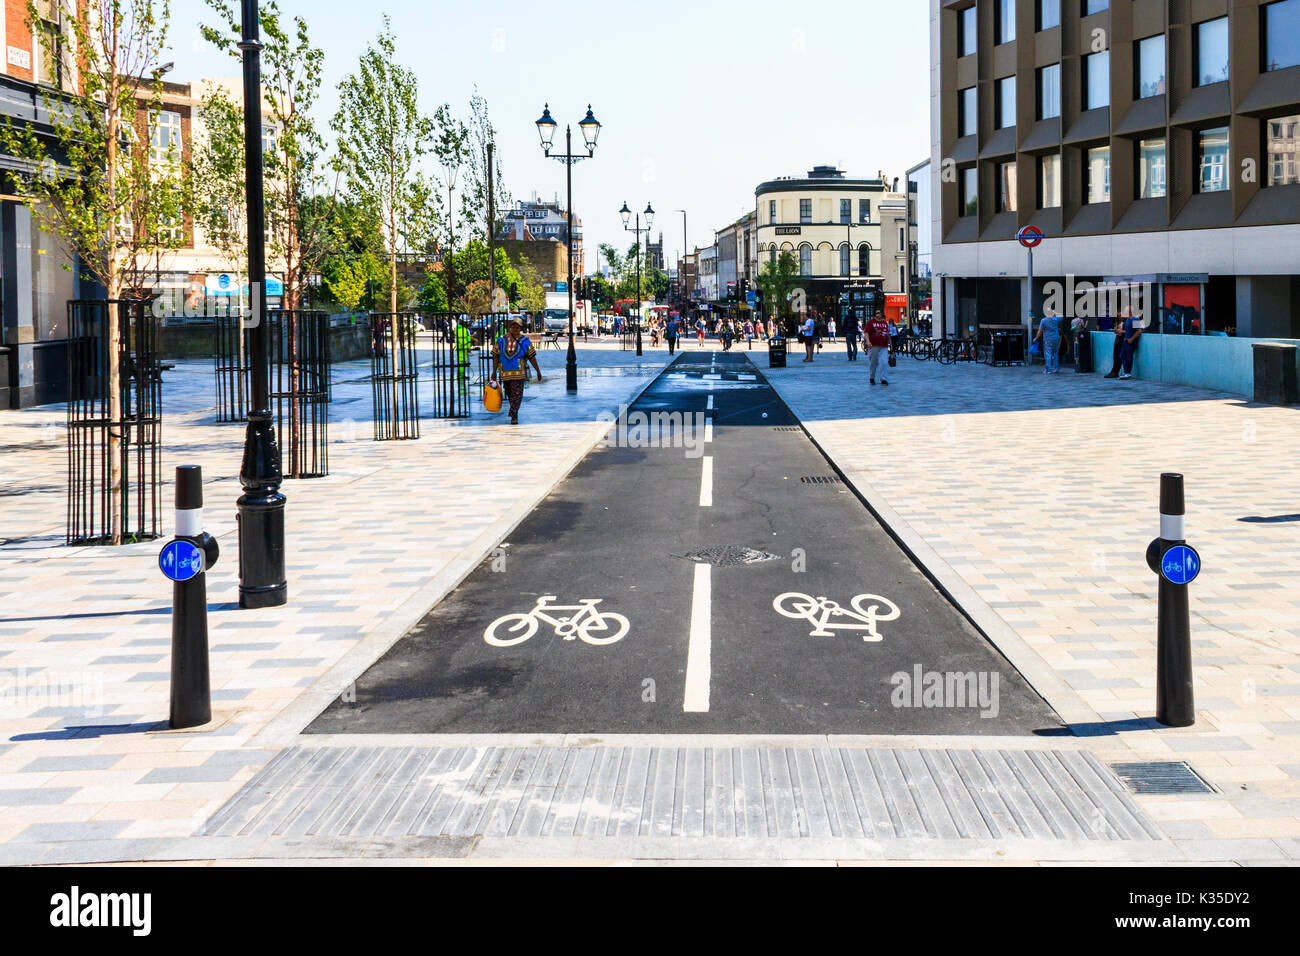 Cycle lanes in 'Navigator Square', the newly pedestrianised centre of Archway, North London - Stock Image